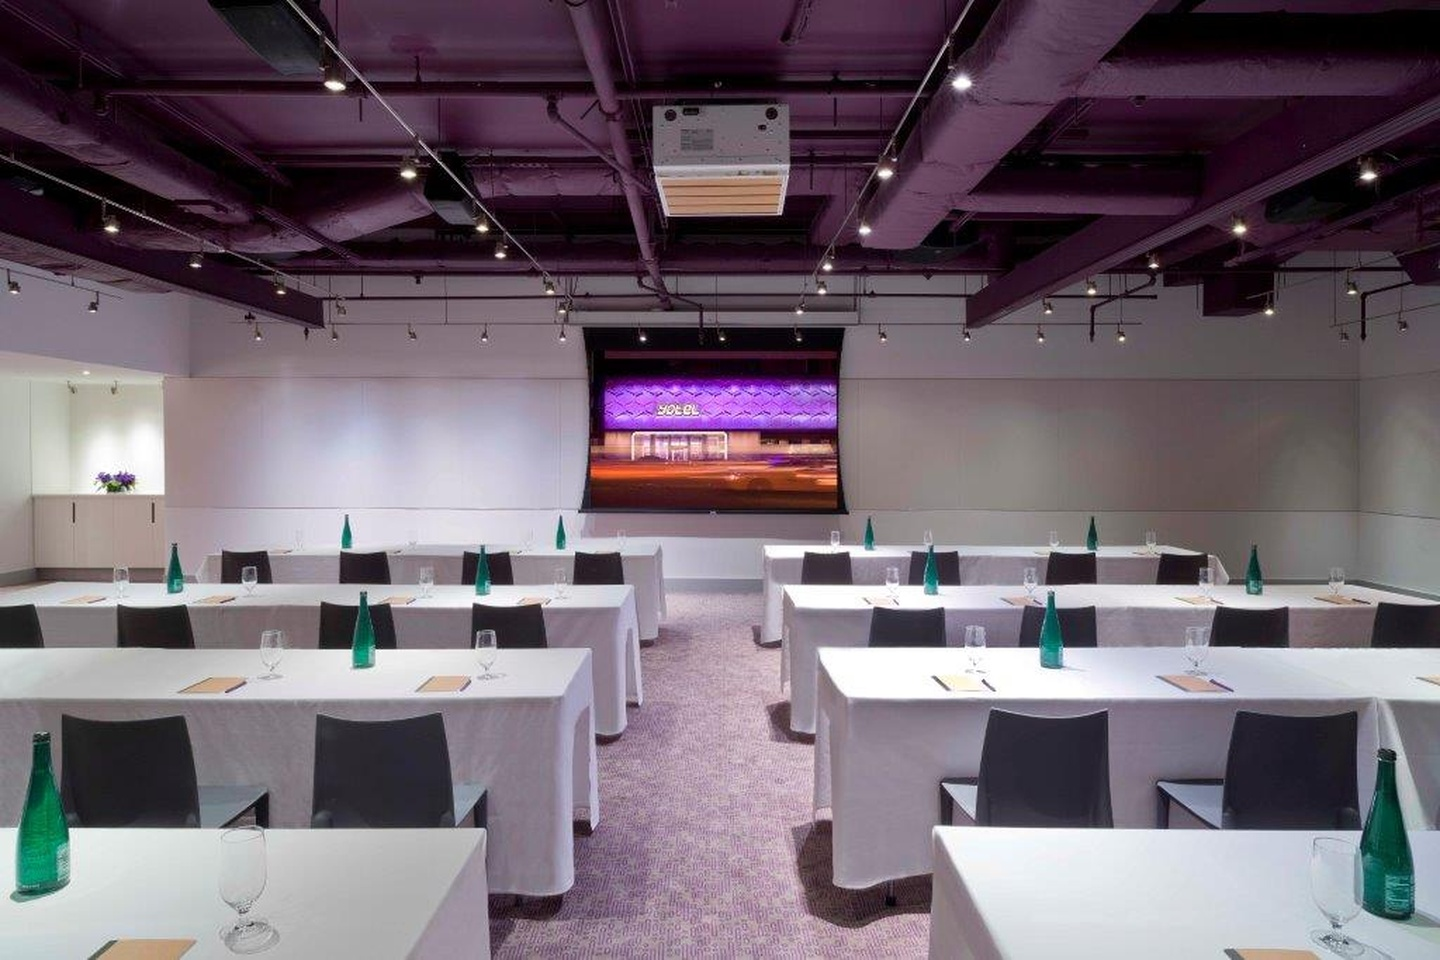 NYC seminar rooms Meeting room Yotel - Studio image 1